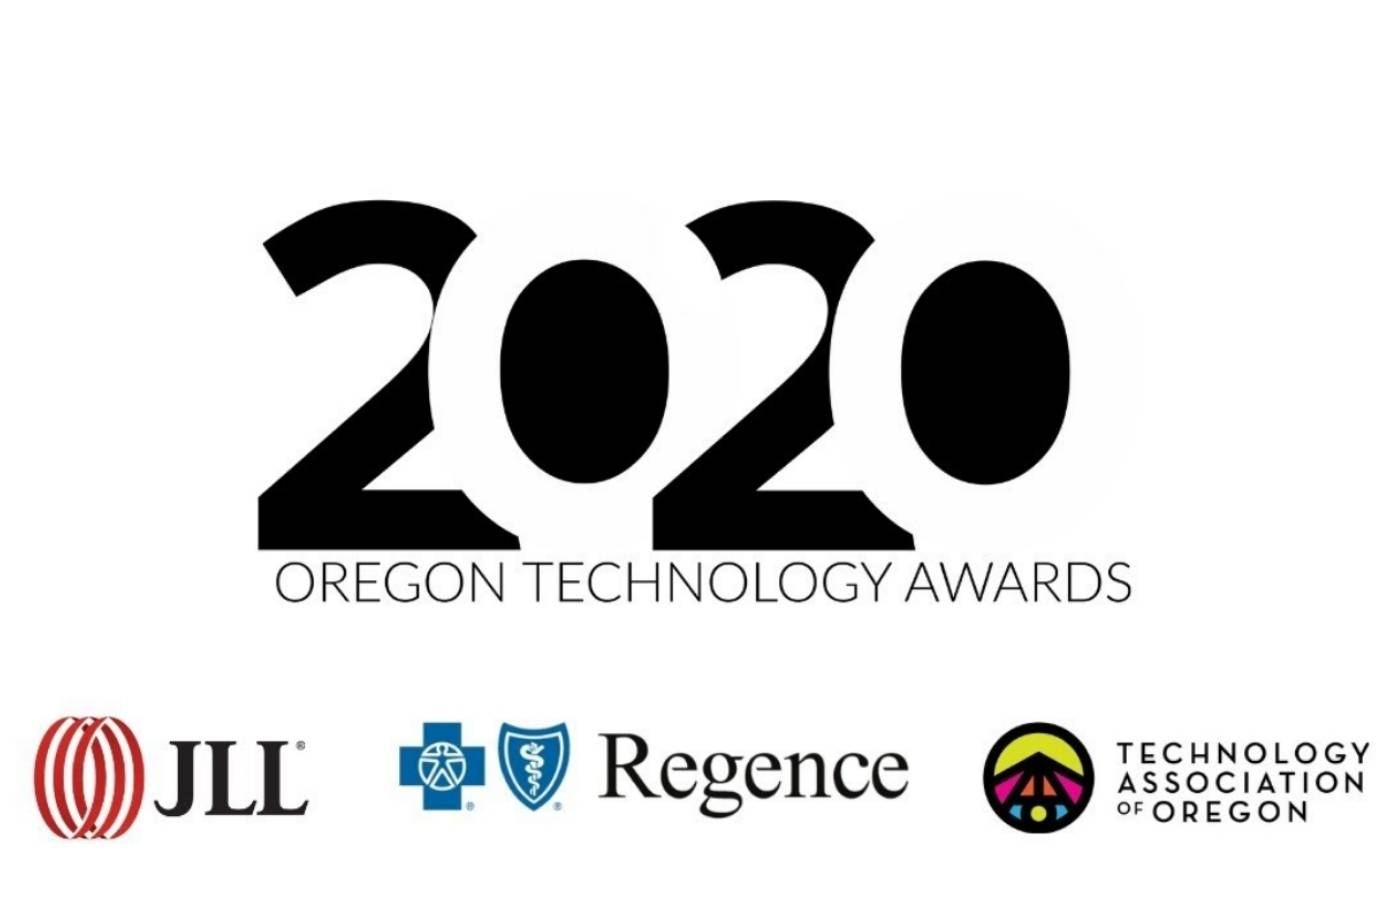 Oregon Technology Awards 2020 Winners Announced